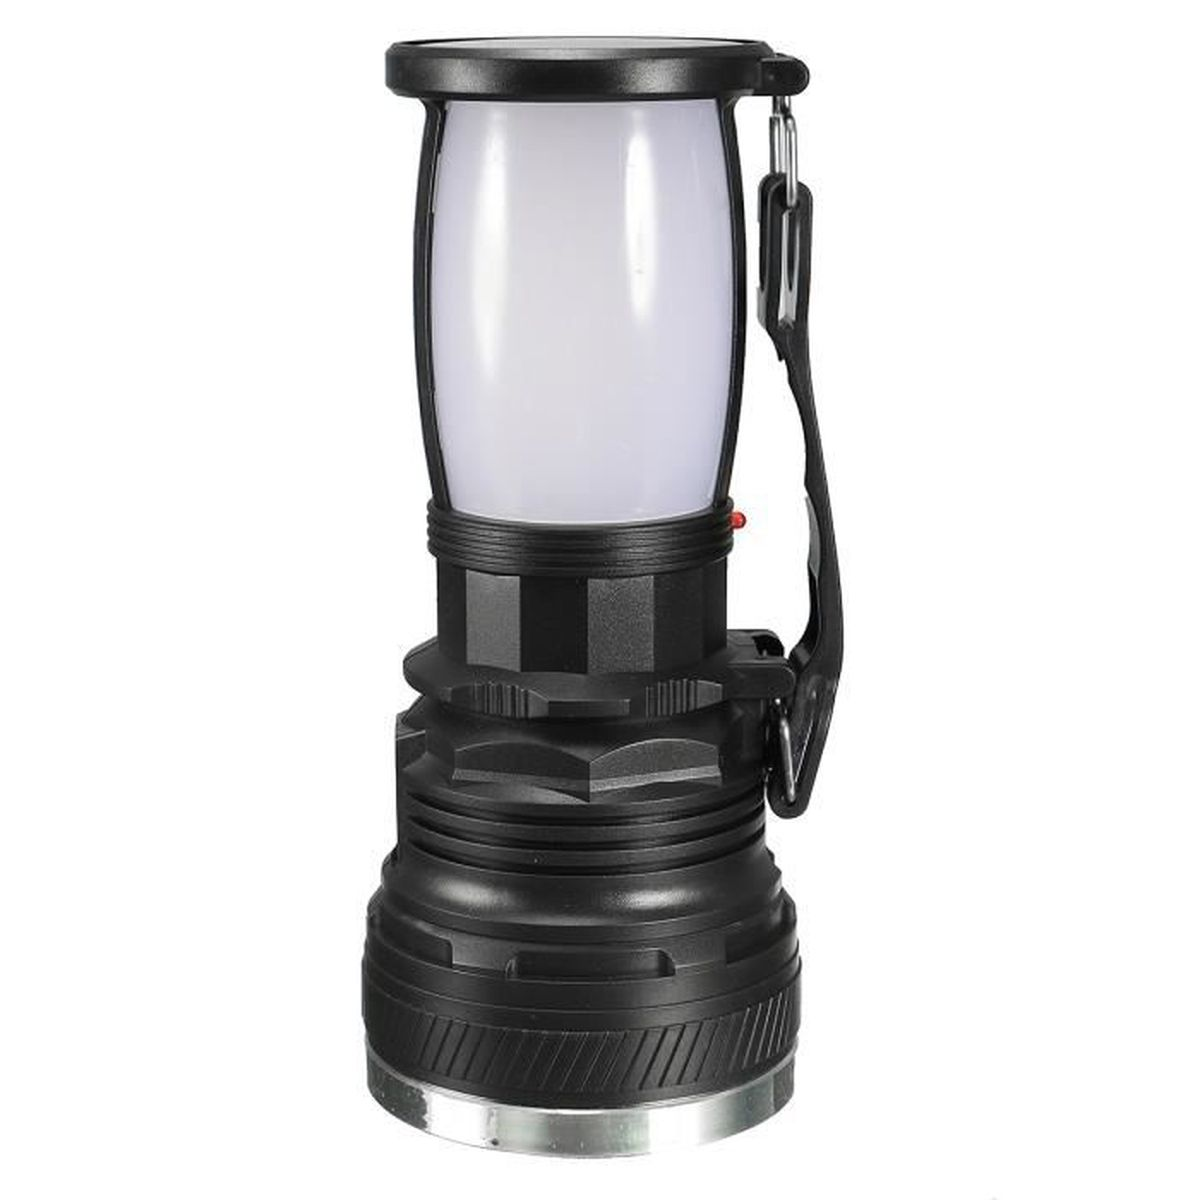 Led lampe rechargeable solaire lanterne torche poche camping p che tente achat vente lampe - Lampe camping rechargeable ...